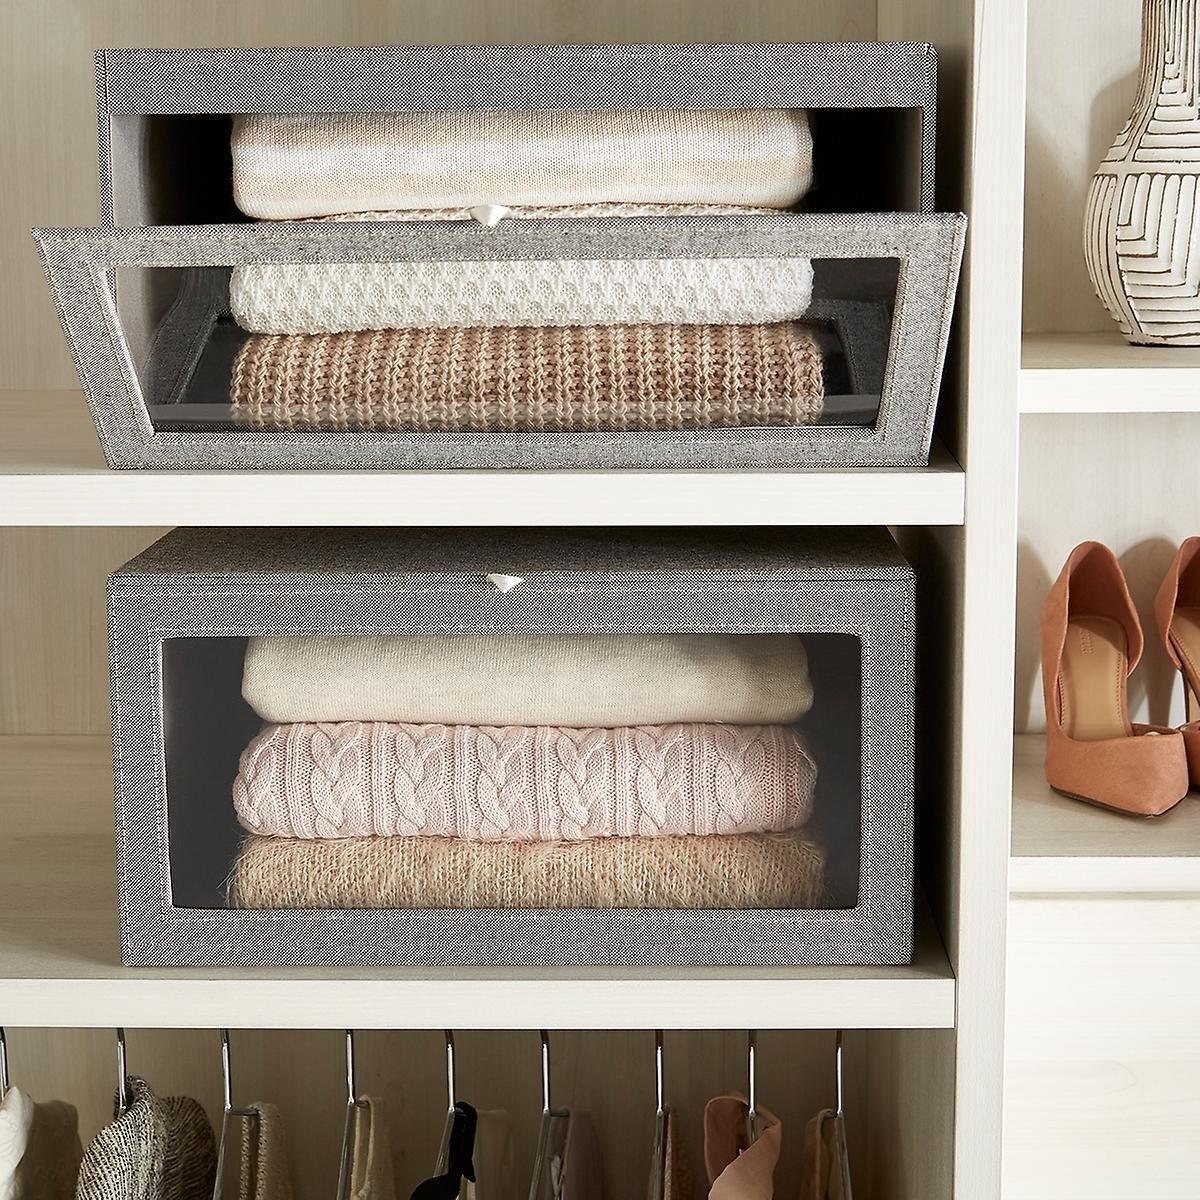 28 Actually Cute Storage Ideas For Every Room In Your Home Sweater Box Sweater Storage Container Store